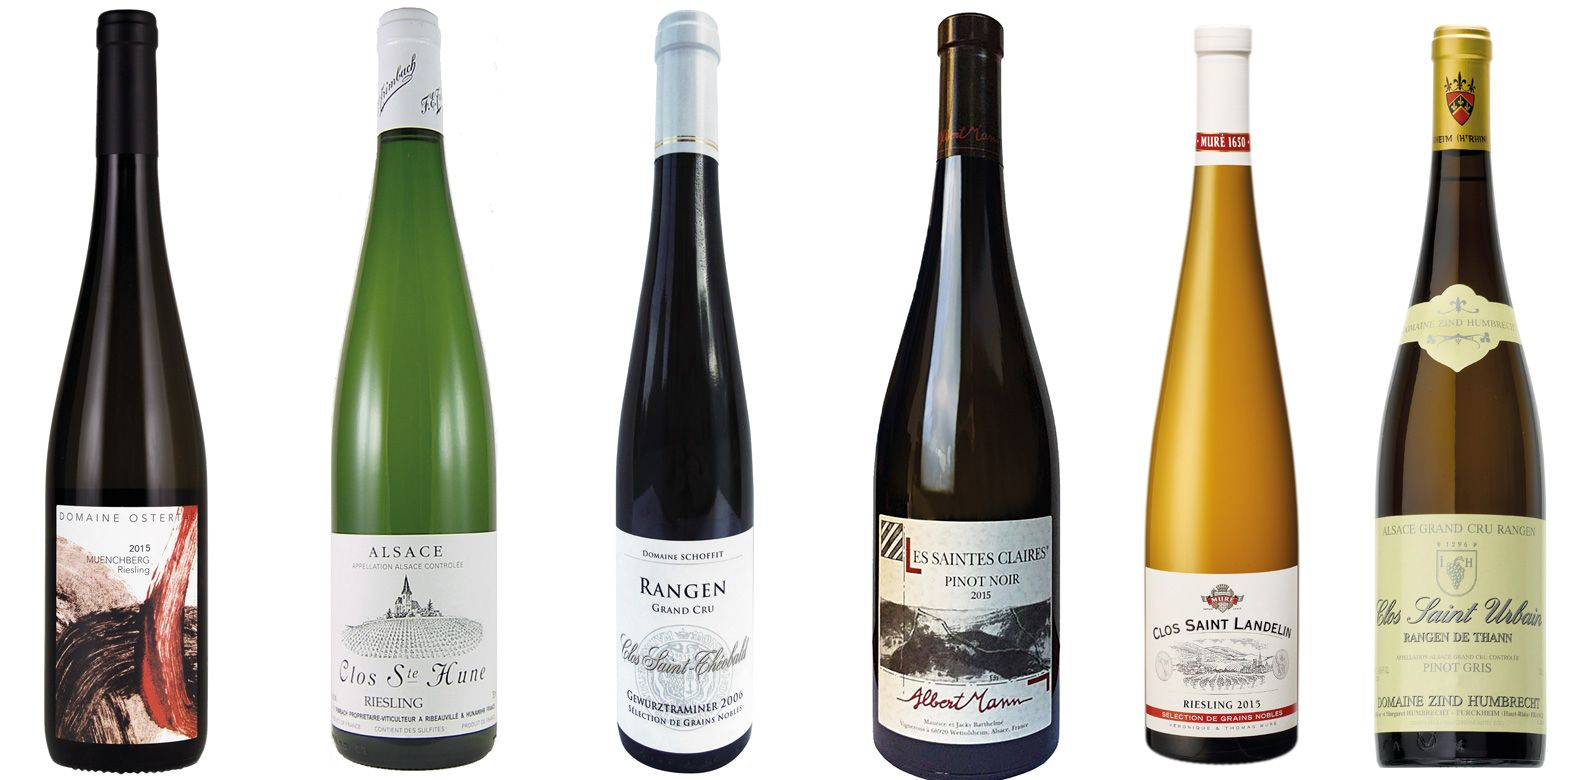 10 Best Wines From Alsace